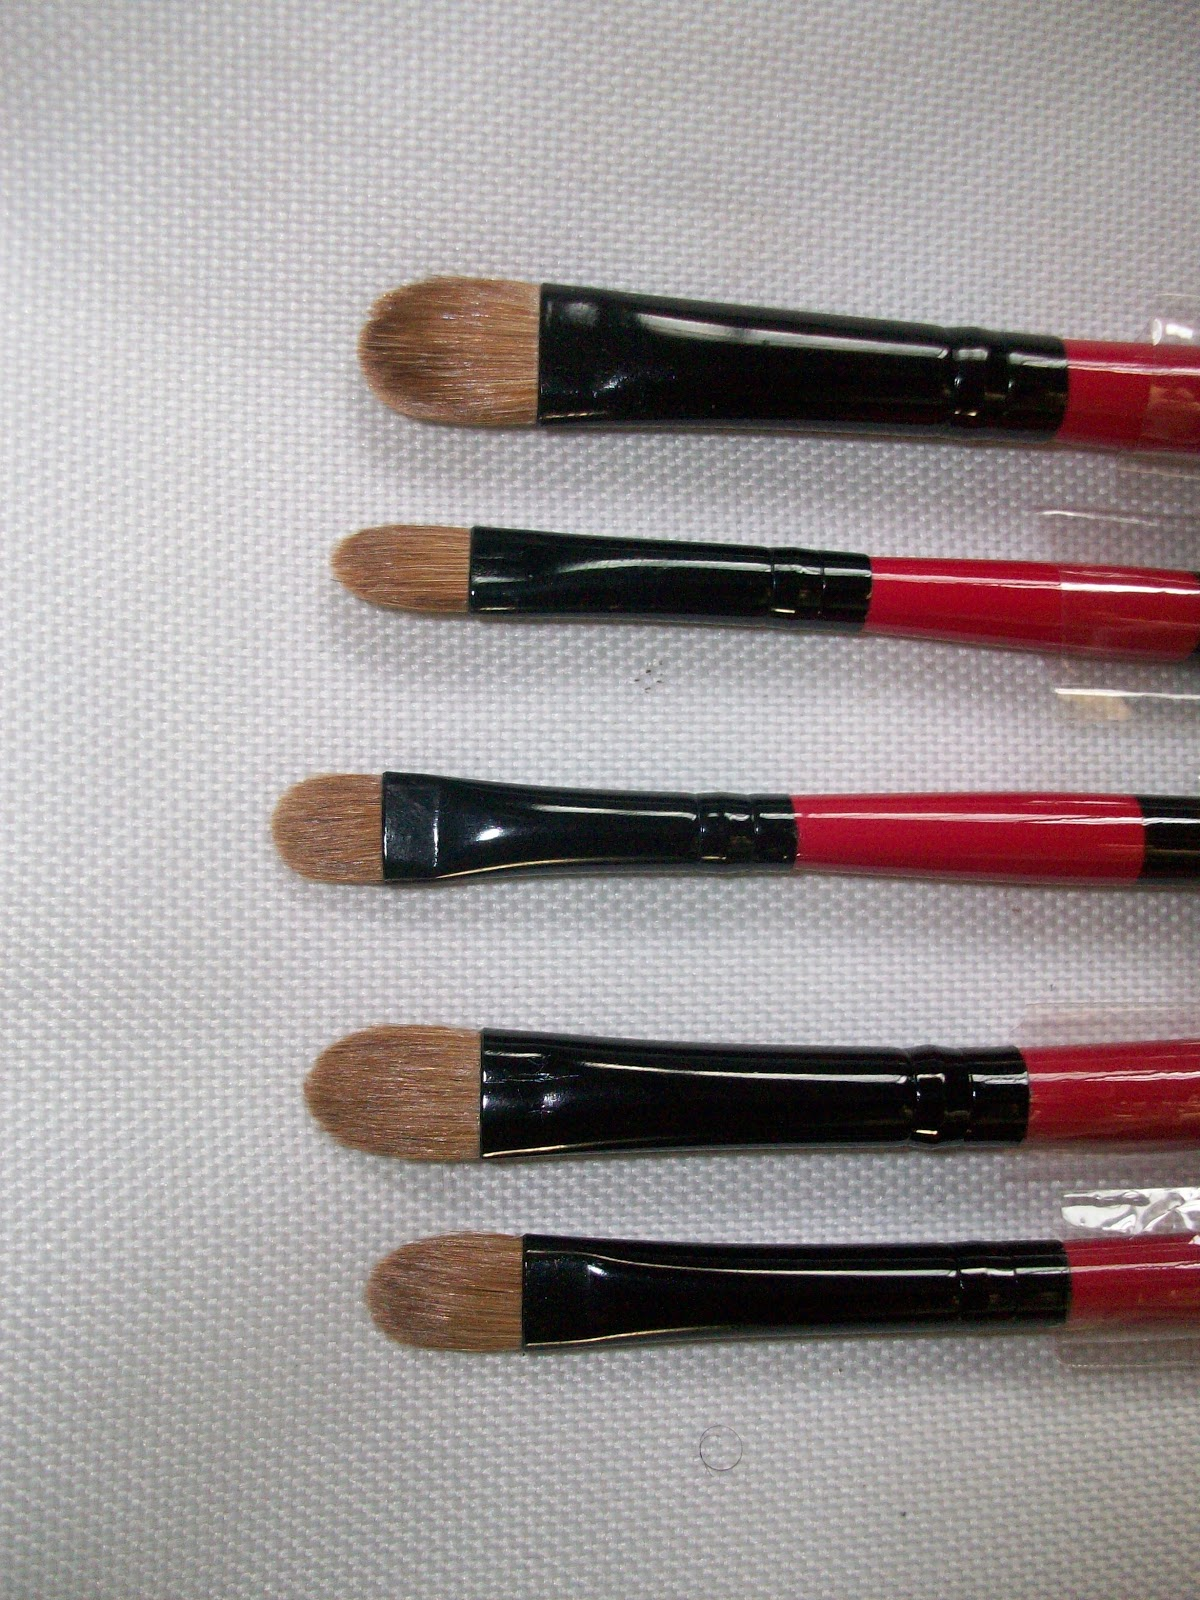 Pro Brush Powder By Nyx Professional Makeup: Brush Review: Gifty's Professional Brush Set